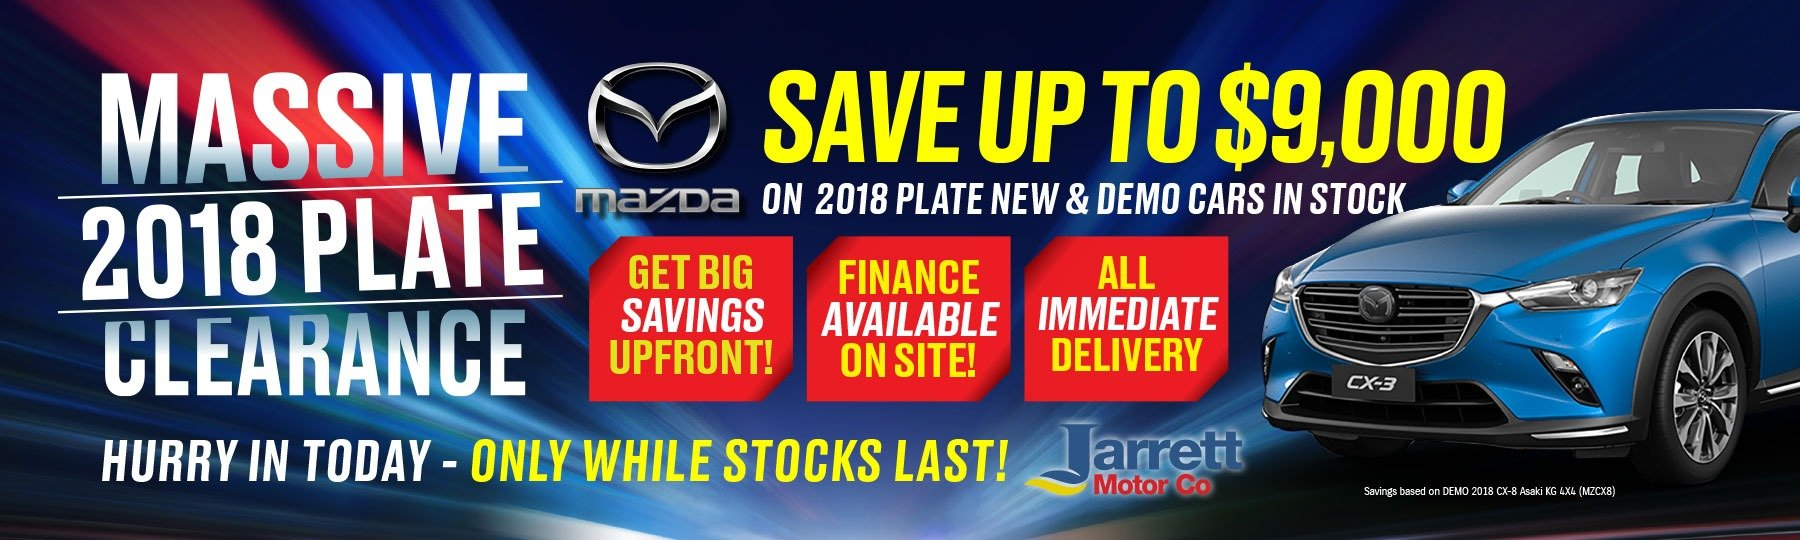 Jarrett Mazda 2018 Plate Clearance-New & Used Demo Stock